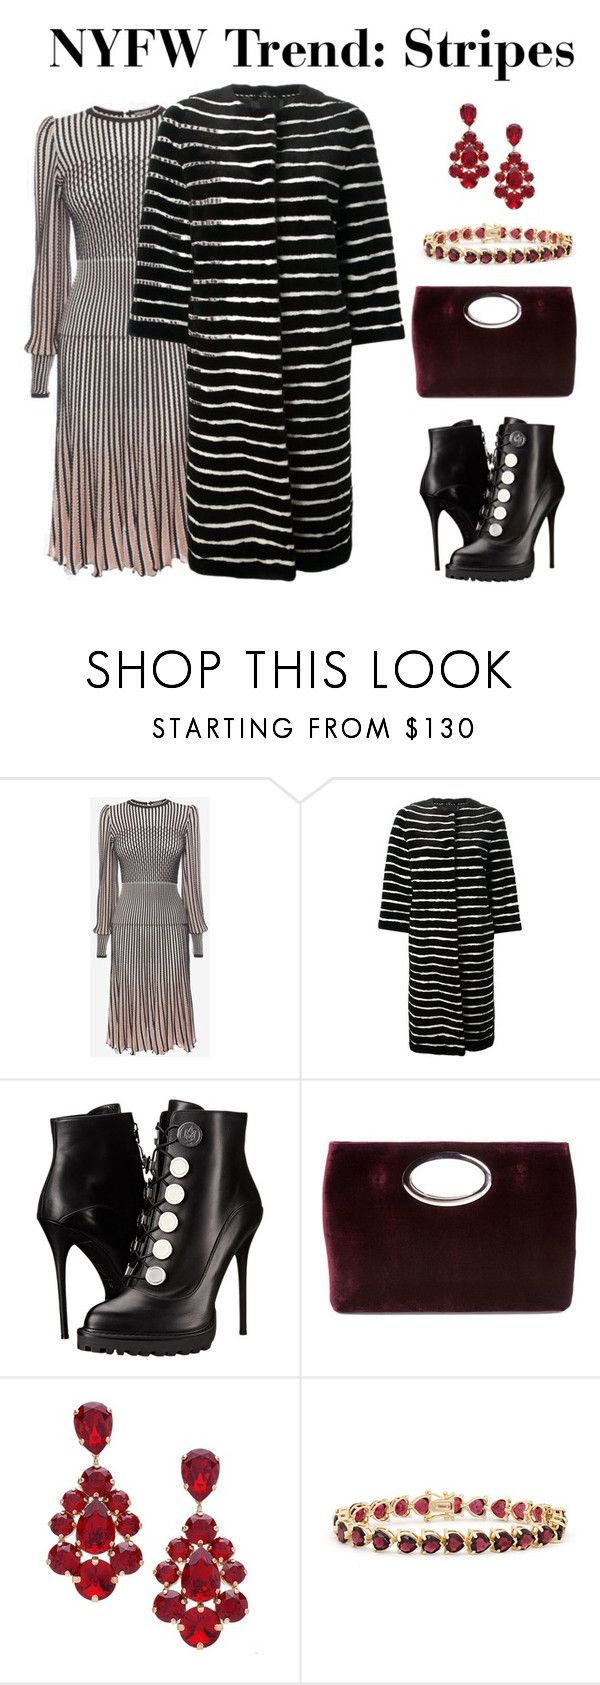 """Stripes"" by judithc-2900 on Polyvore featuring Alexander McQueen, LISKA, Donald J Pliner, L. Erickson, Gioelli, polyvorecommunity and polyvorefashion"